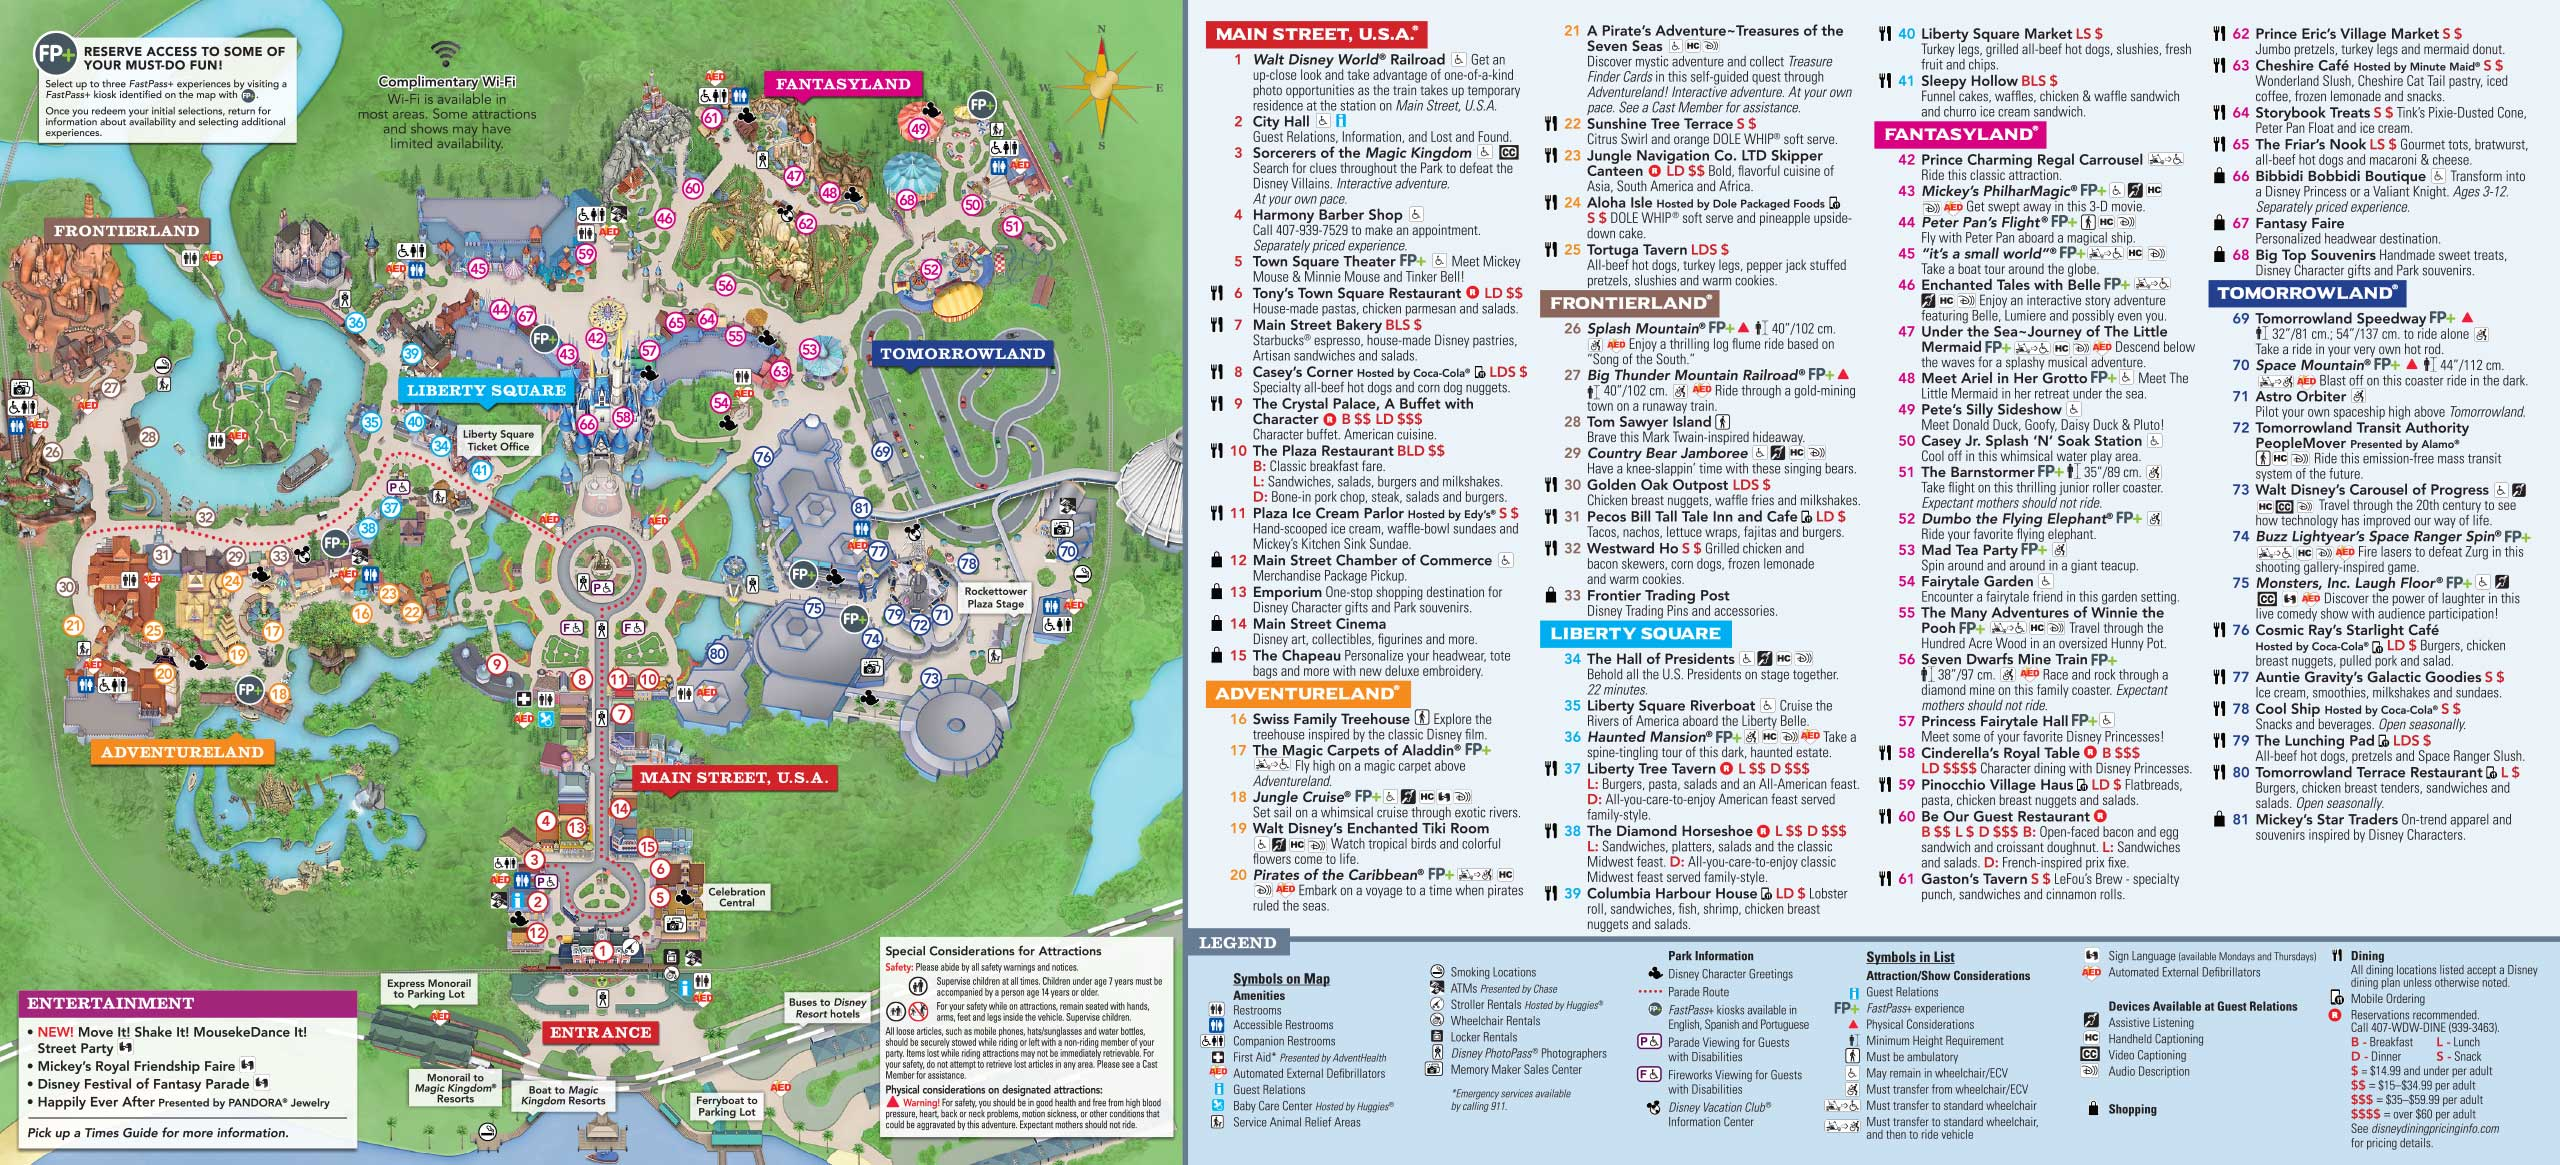 Disney Park Map January 2019 Walt Disney World Park Maps   Photo 2 of 14